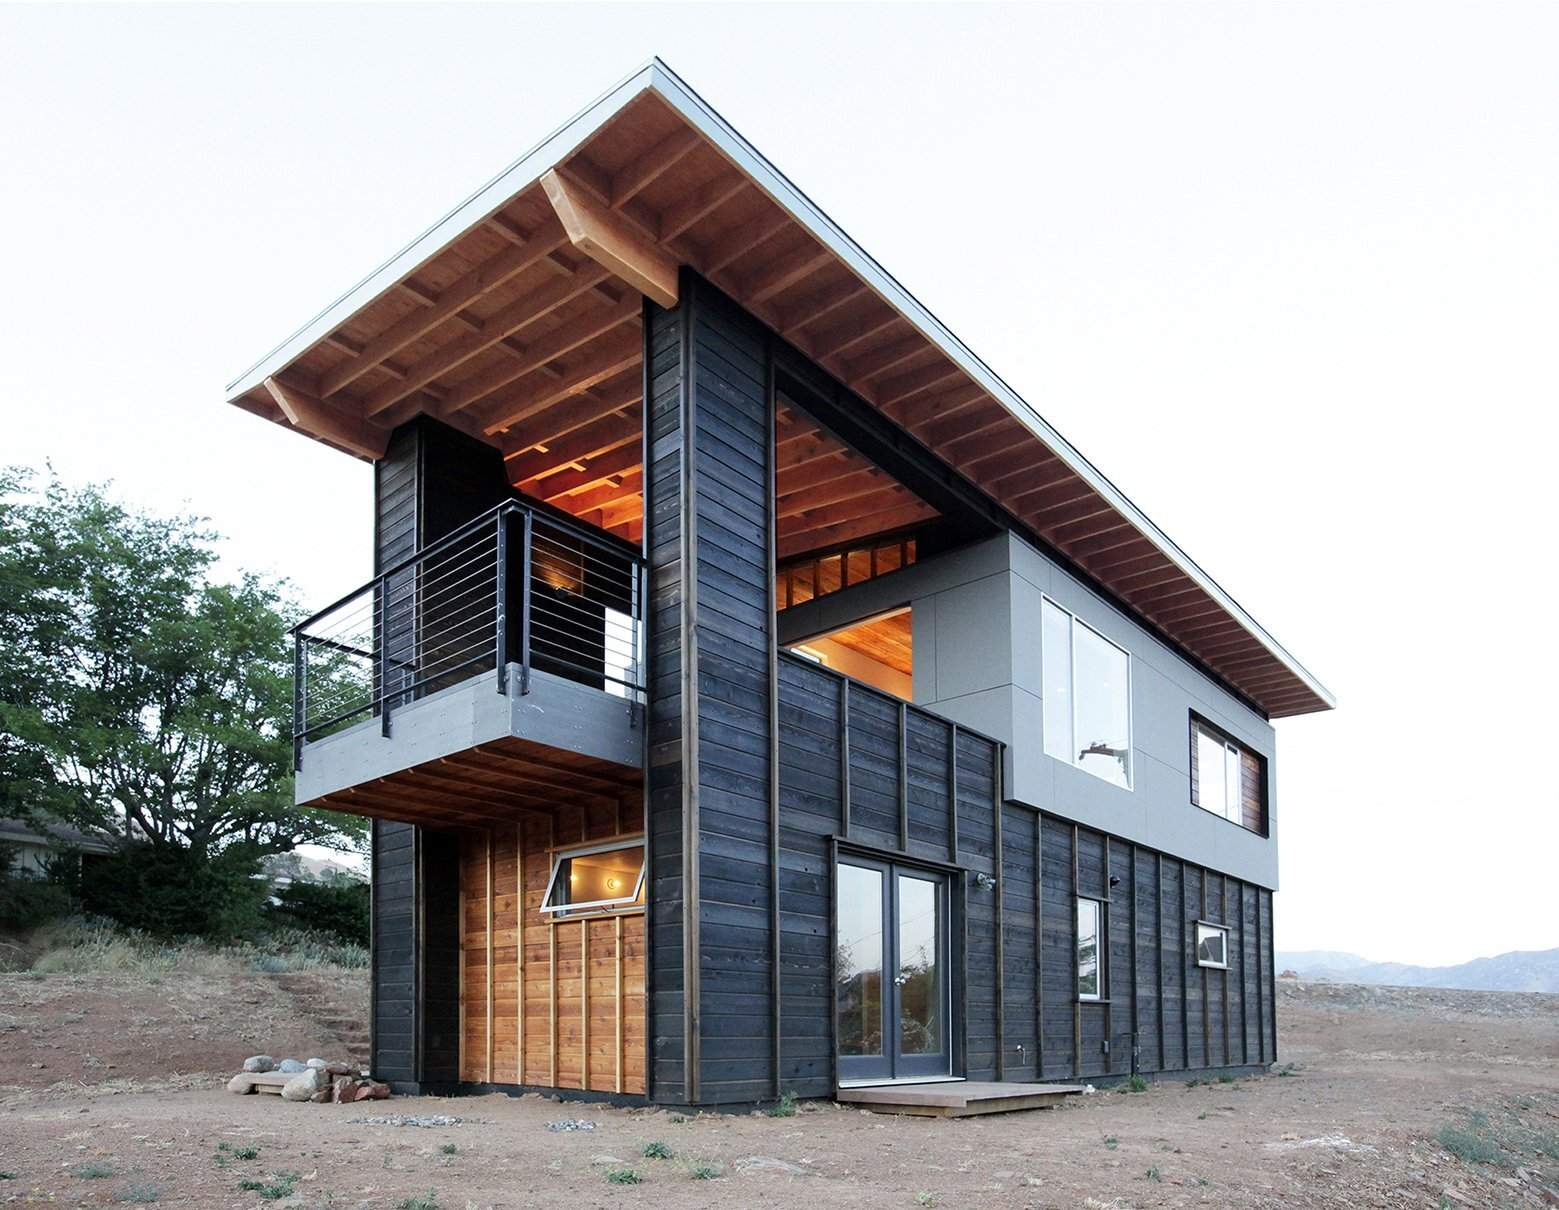 510 Cabin - Small House - Hunter Leggitt Studio - California - Exterior - Humble Homes